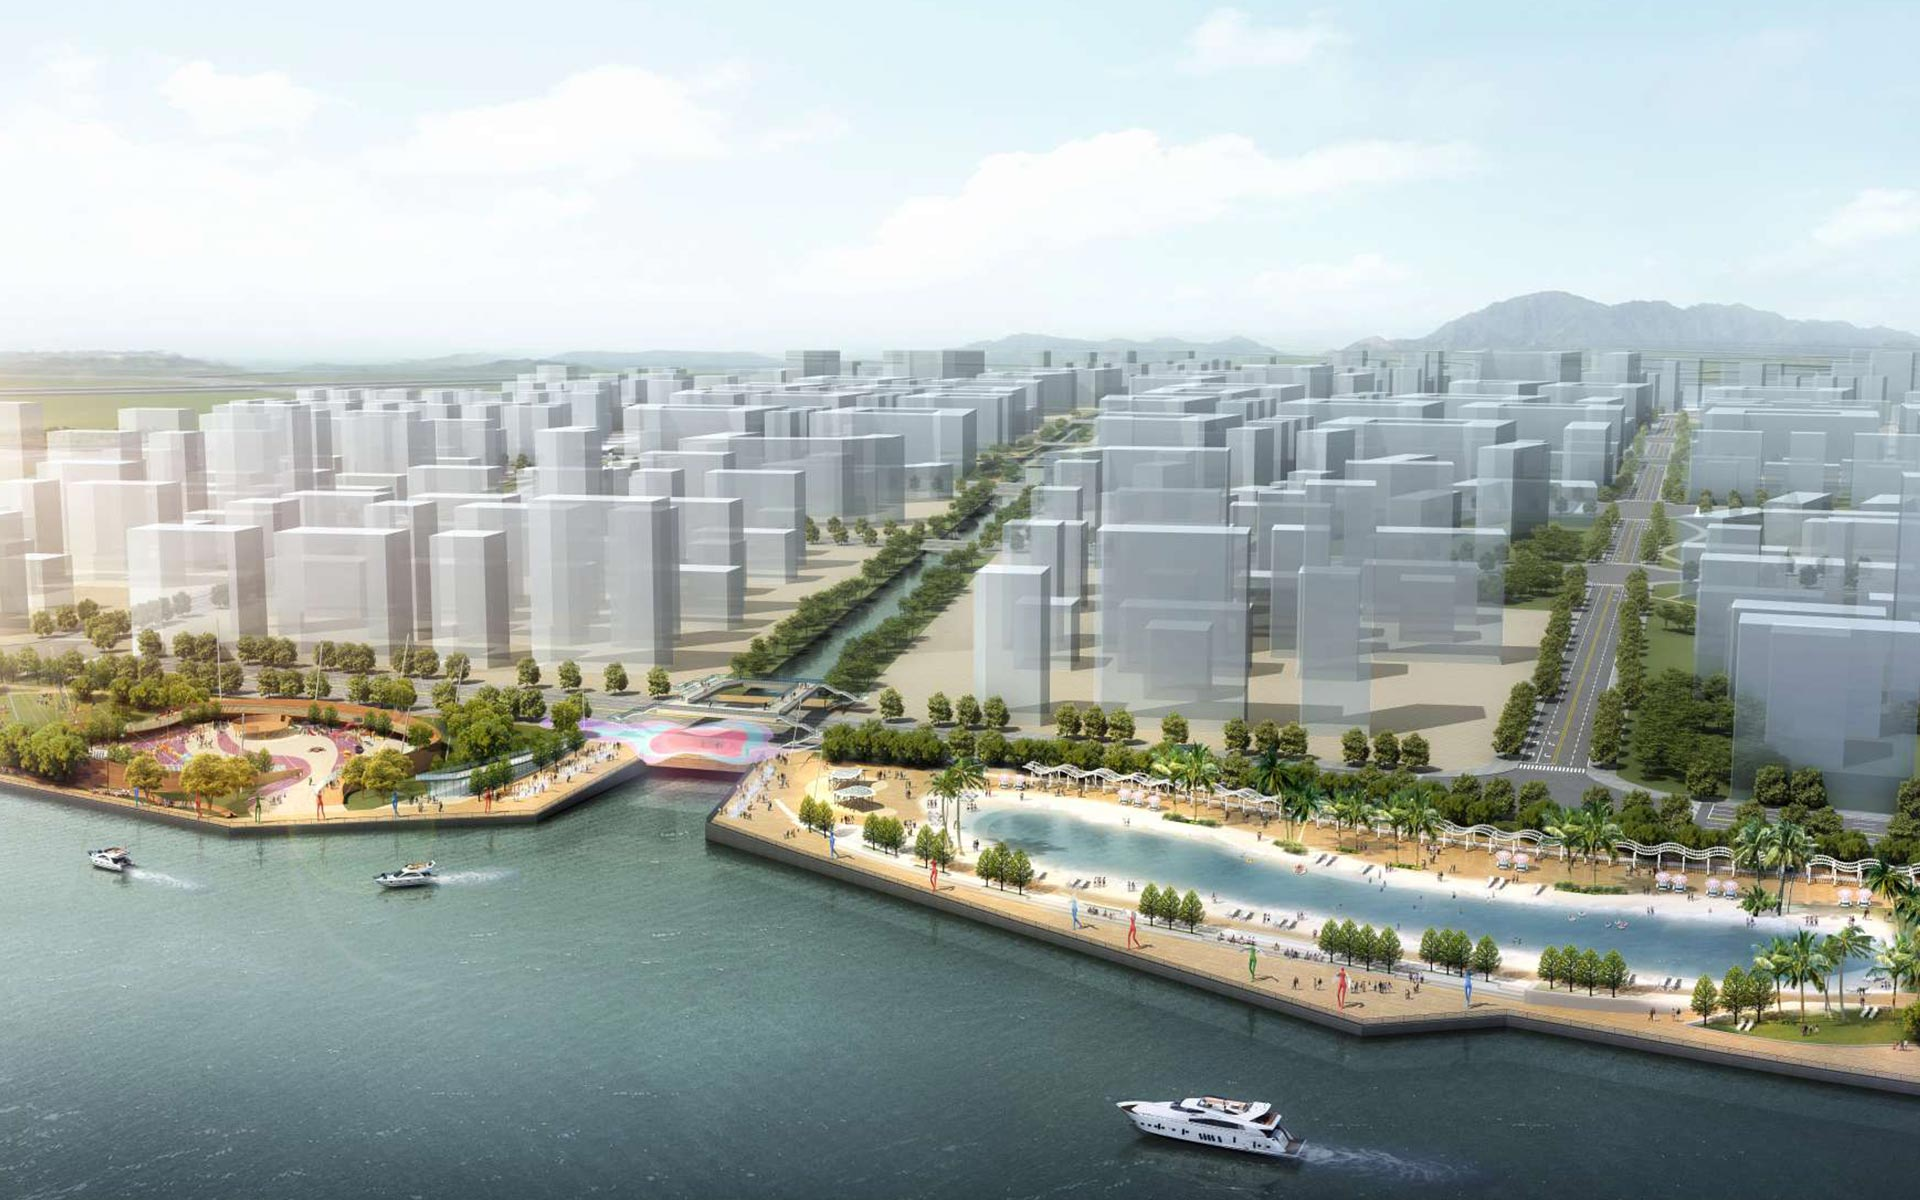 Nansha waterfront landscape obermeyer engineering for Waterfront landscape design